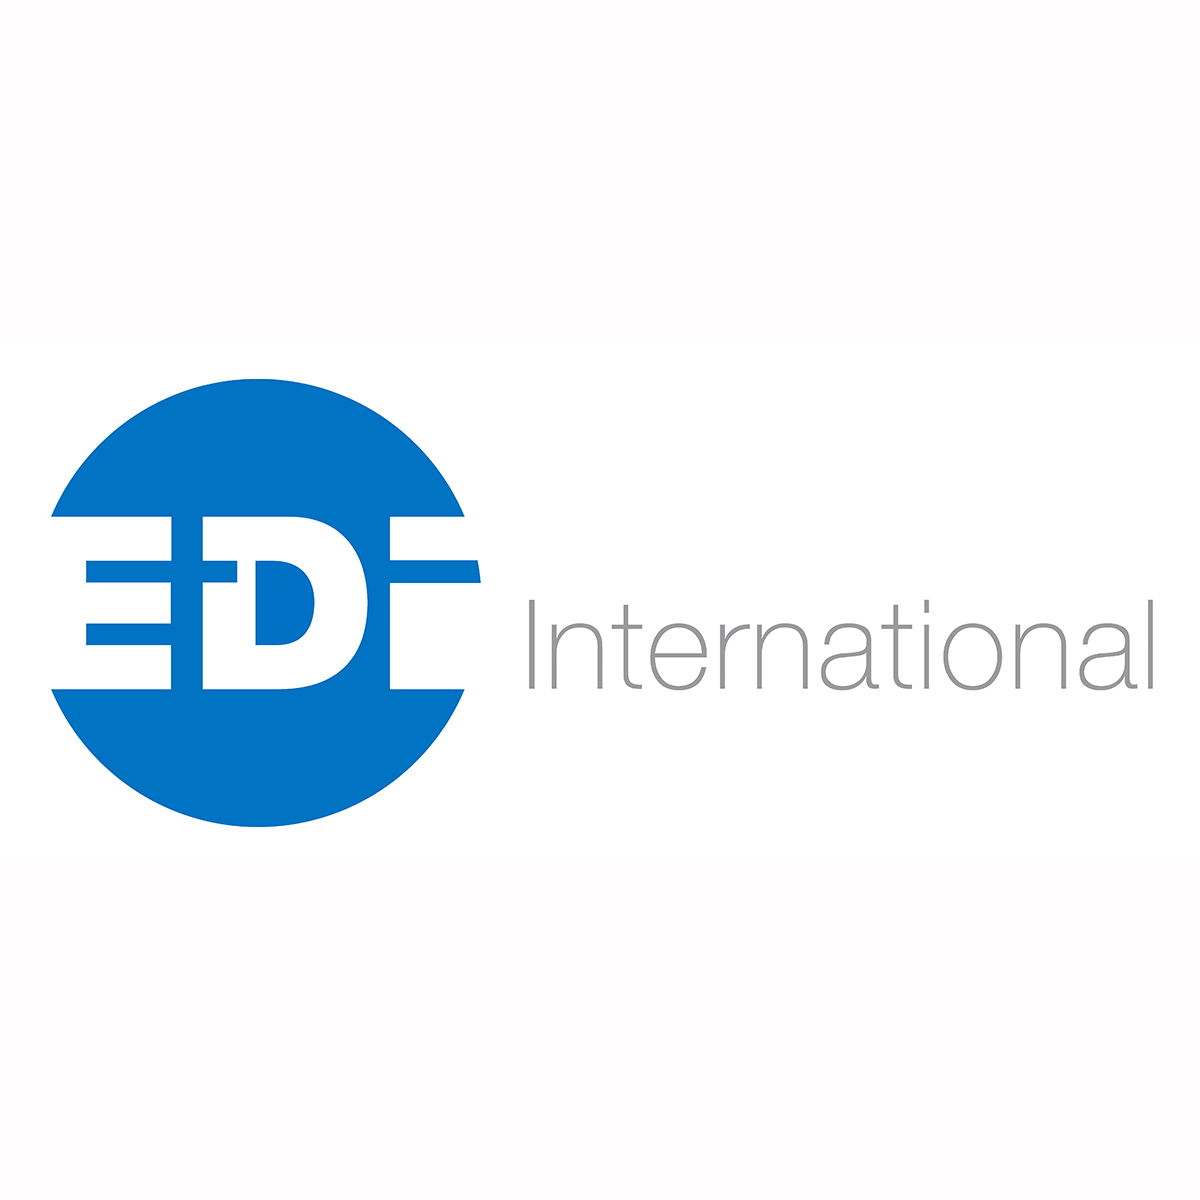 EDI International logo